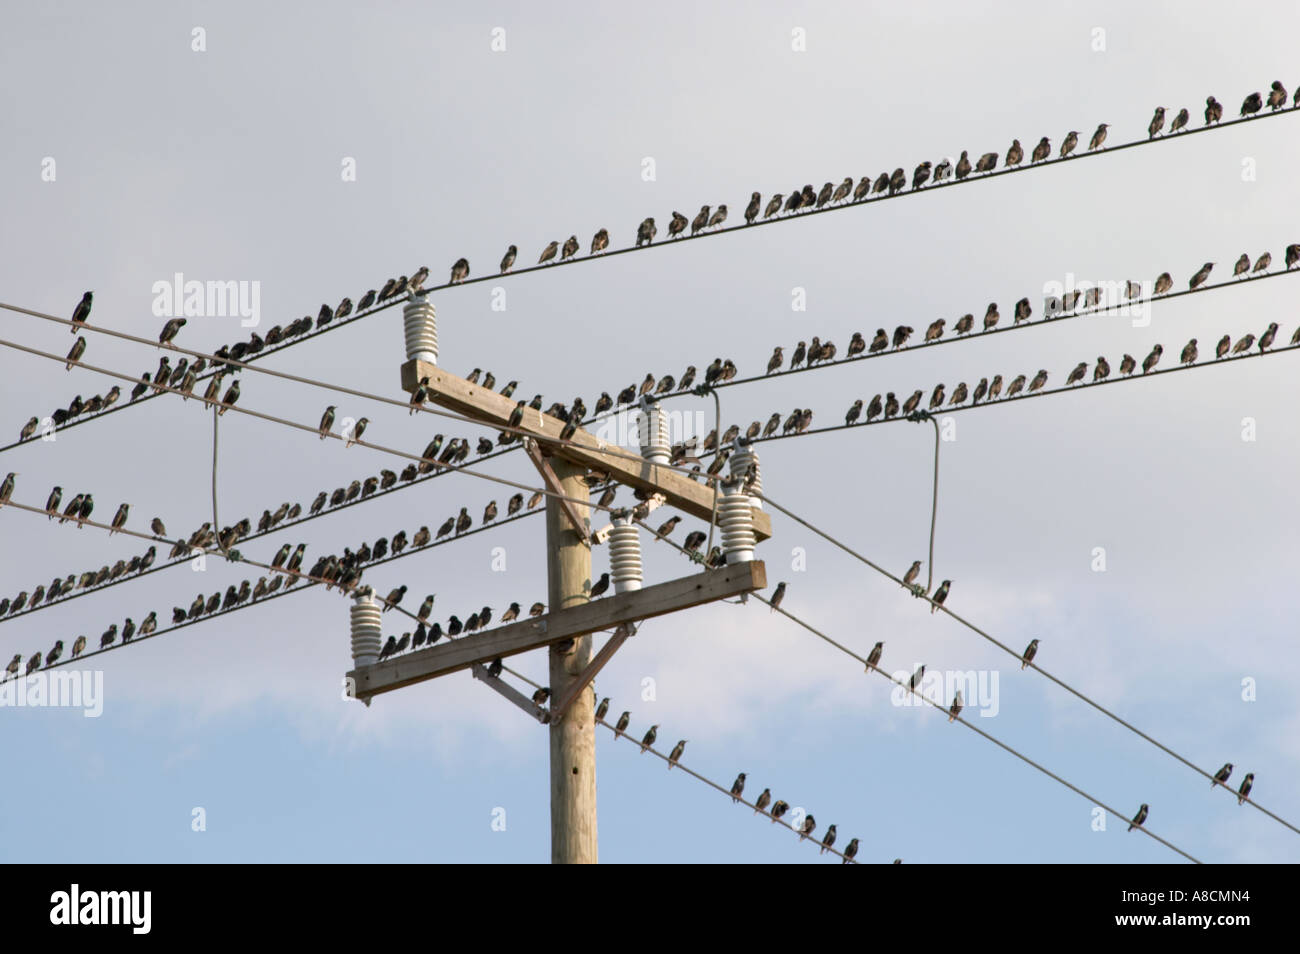 BIRDS ON ELECTRIC AND TELEPHONE LINES AT TELEPHONE POLE IN SOUTHWEST ...